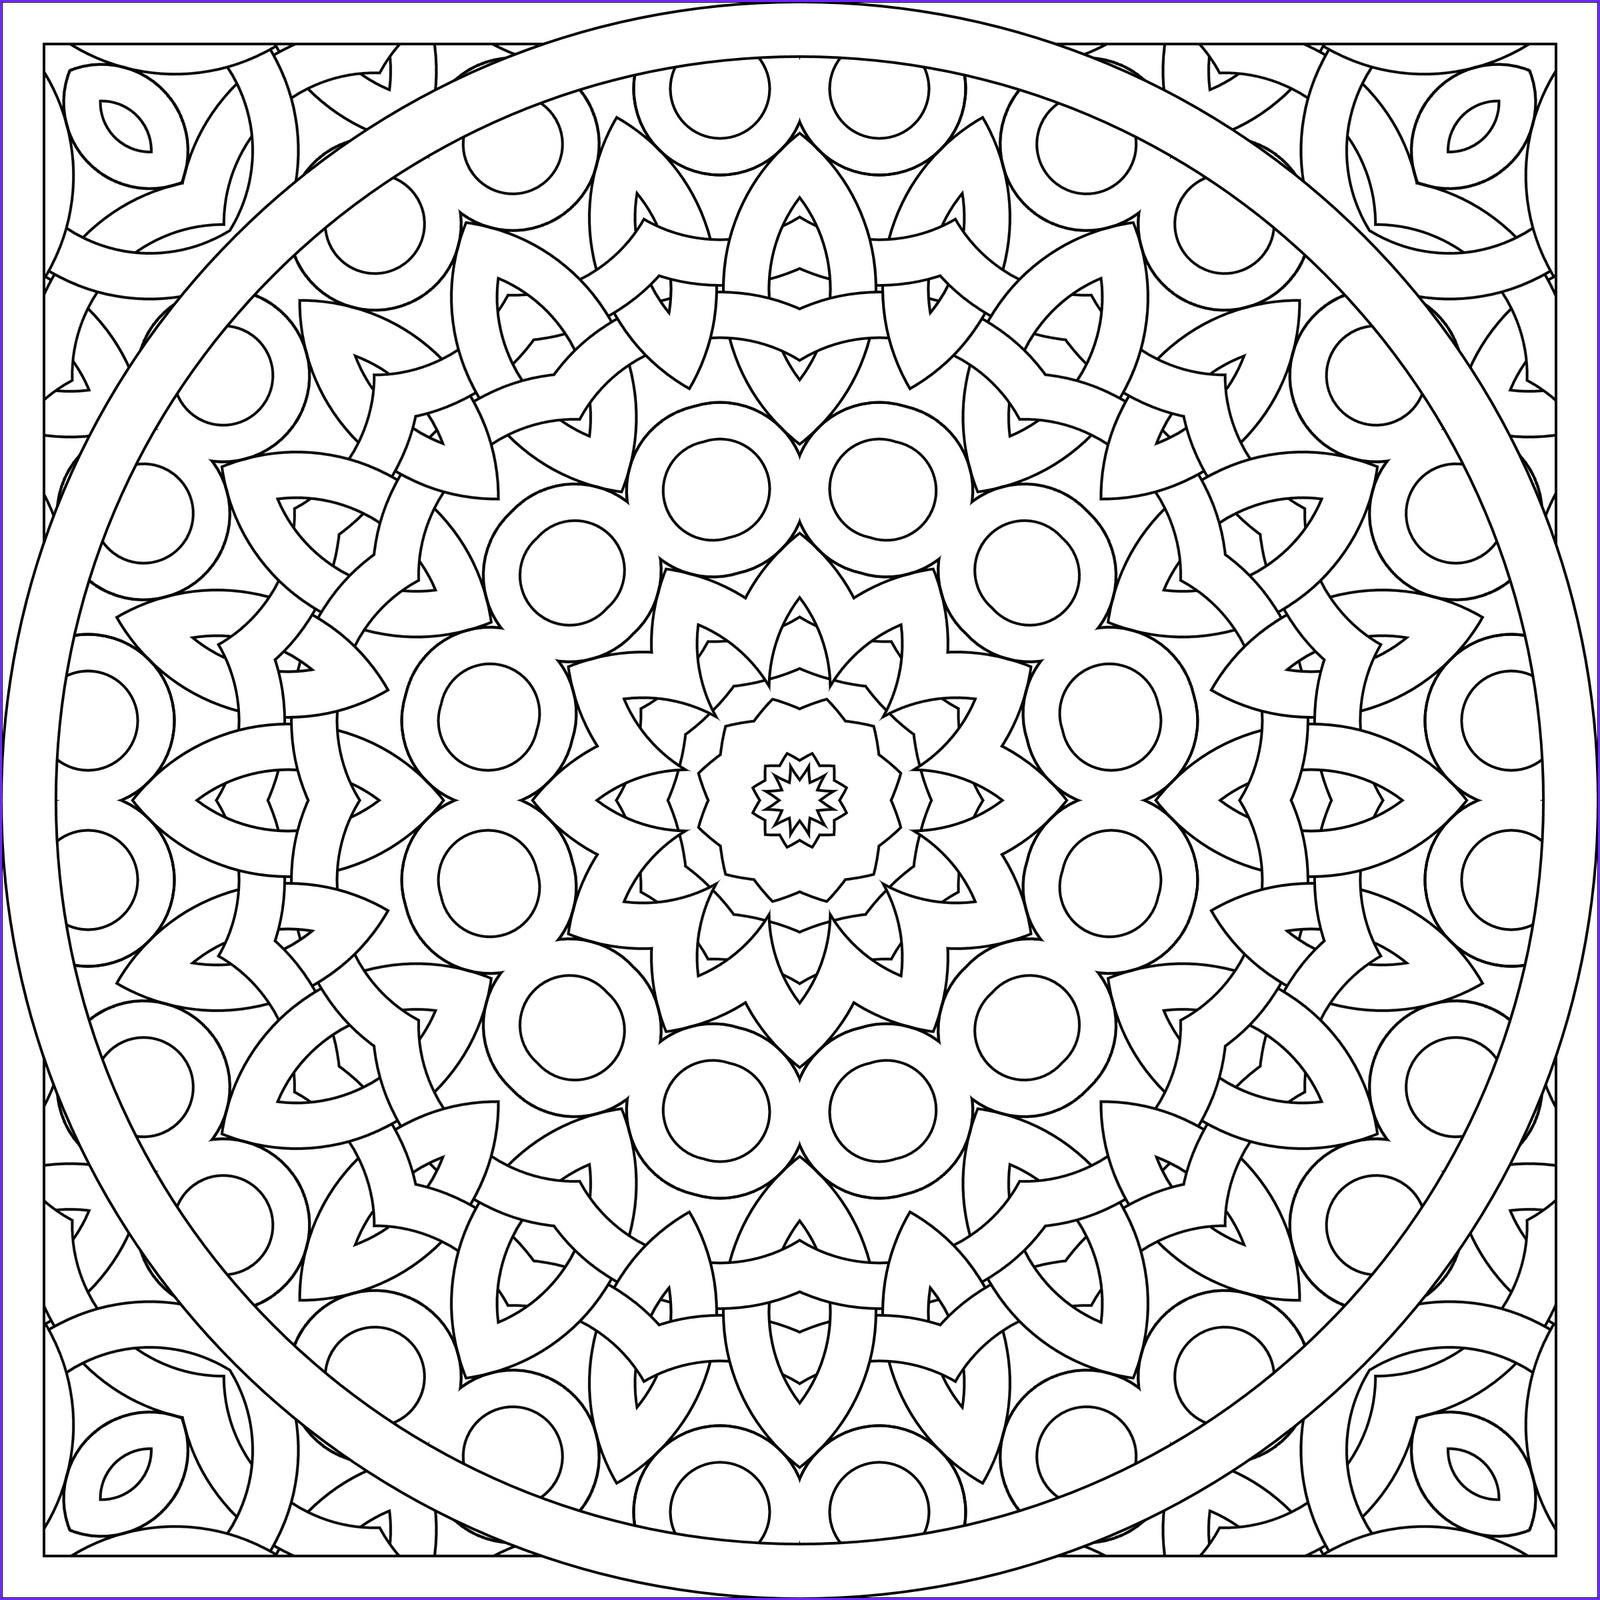 Pattern Coloring Beautiful Stock Pattern Coloring Pages Best Coloring Pages for Kids